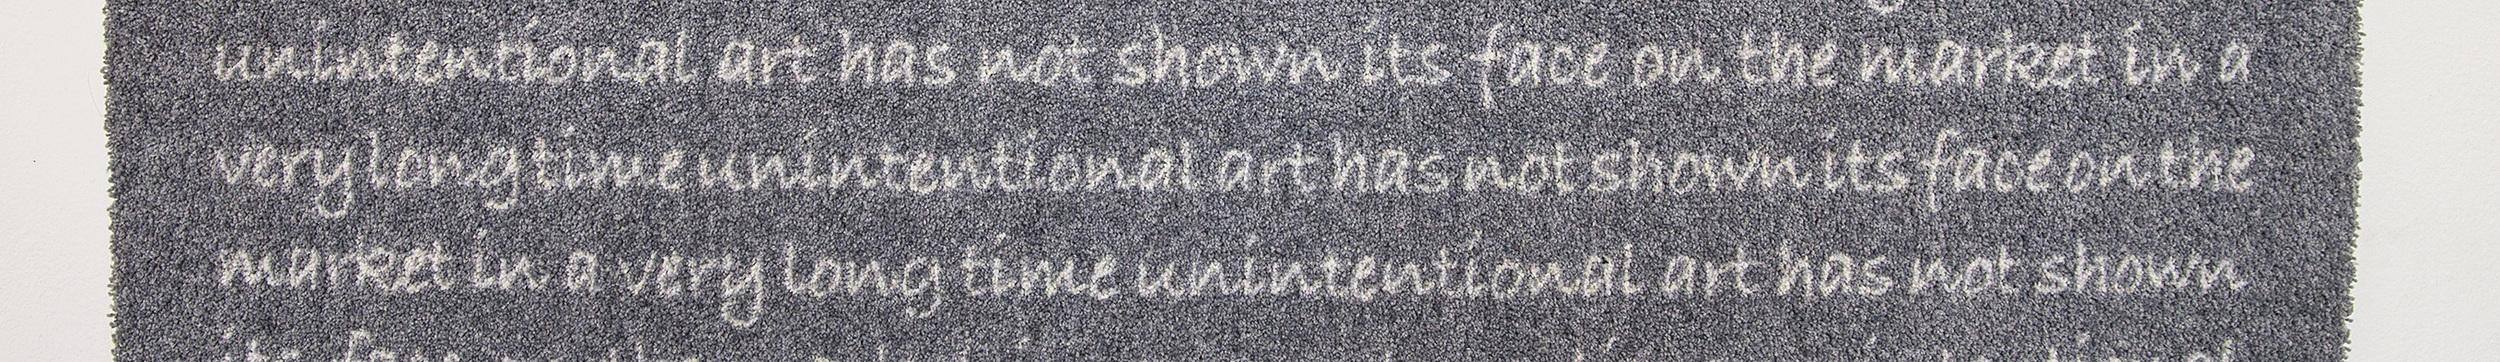 MIRRORED WRITING ON CARPET